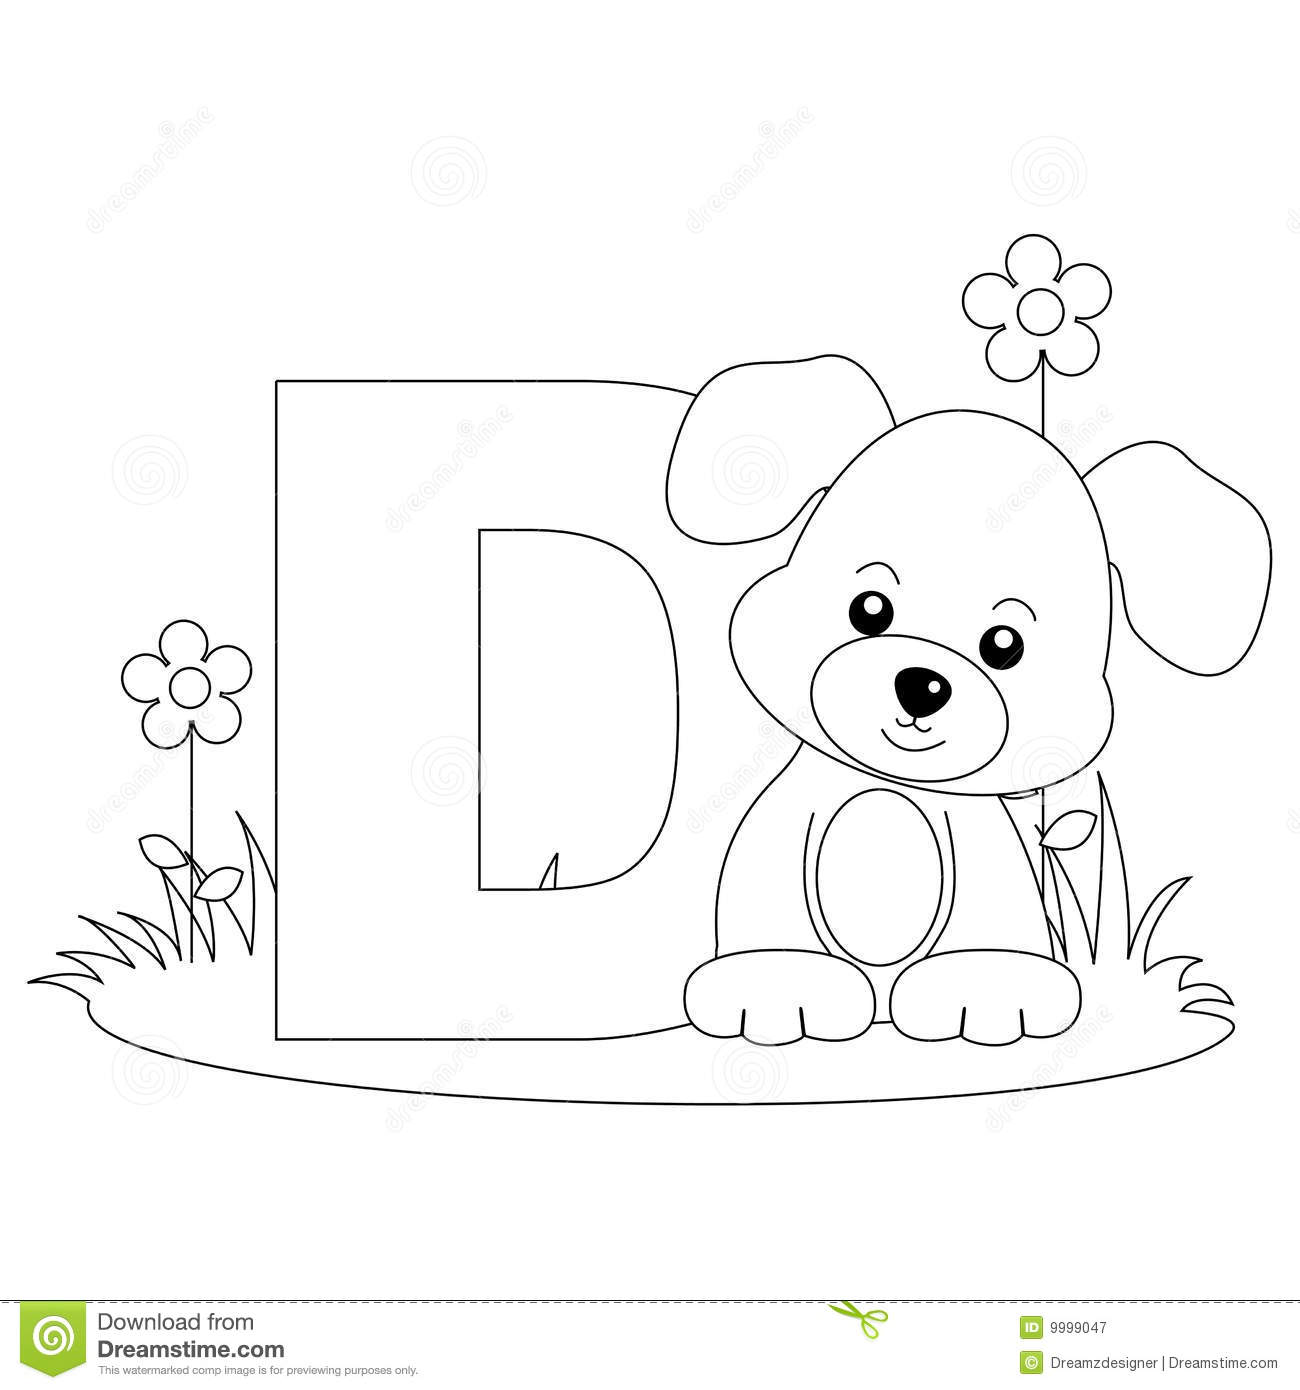 Animal Alphabet Letters Coloring Pages  Educationcom